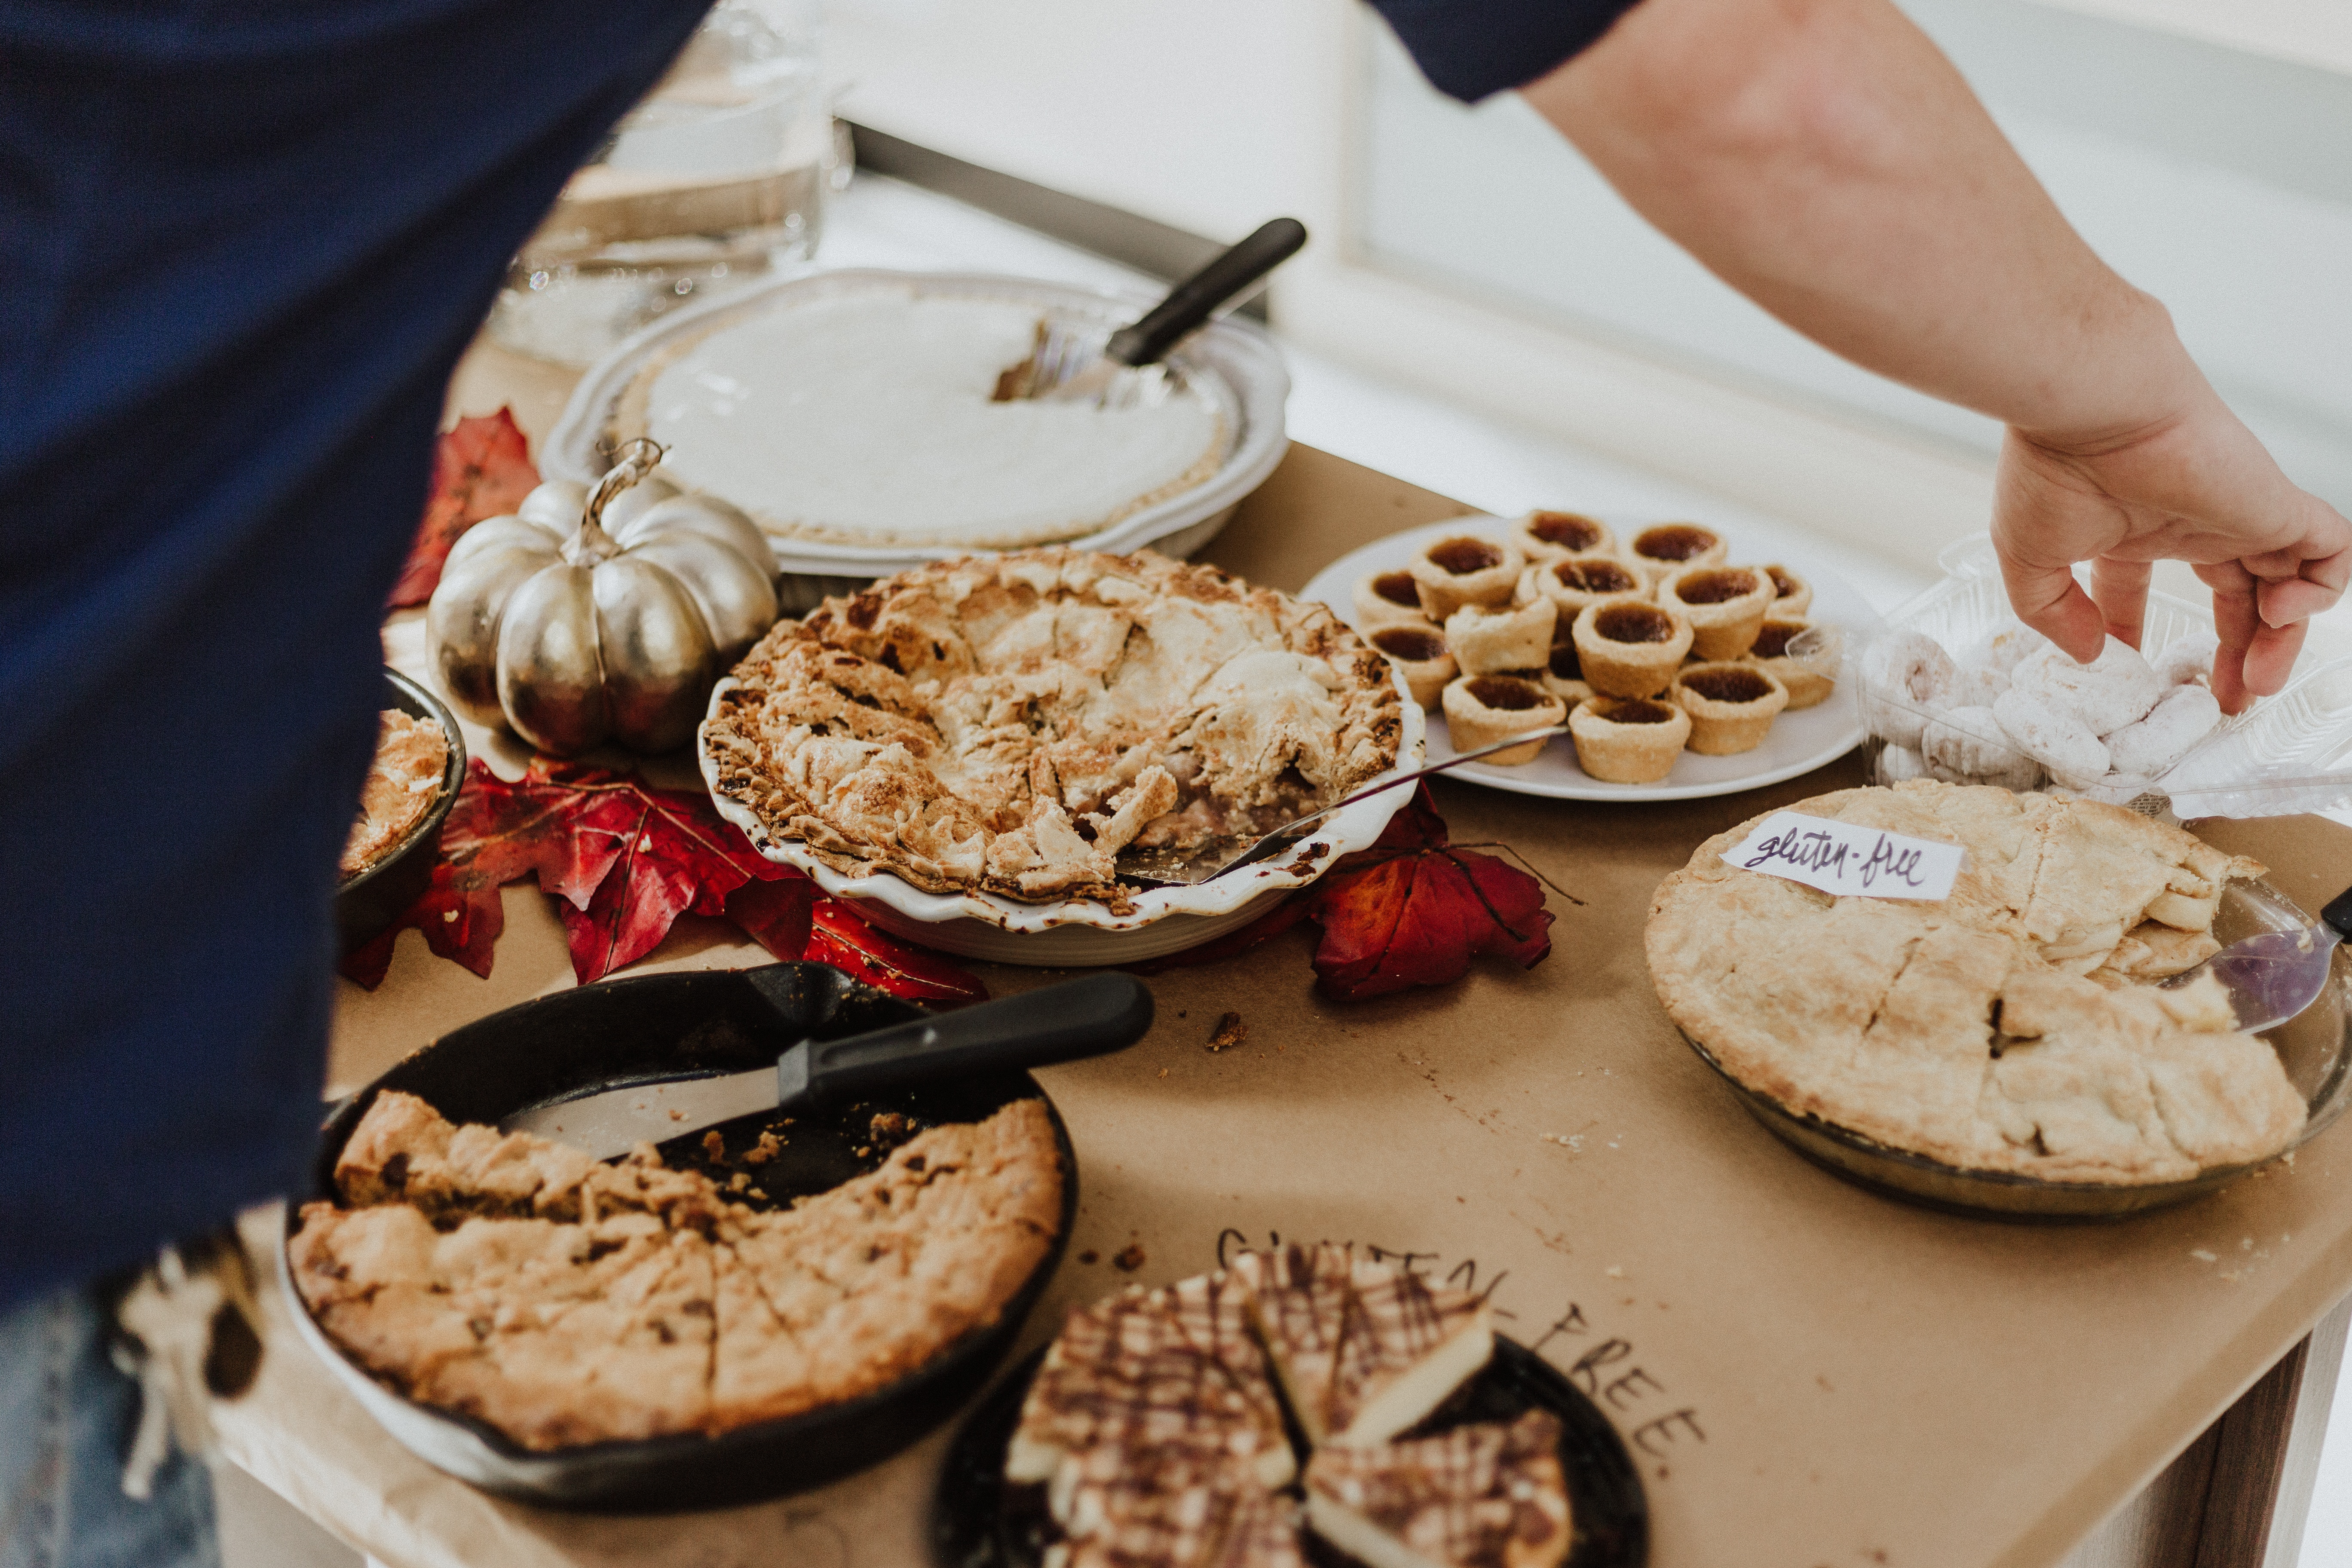 labeled pies - 10 helpful tips for bringing food to a dinner party